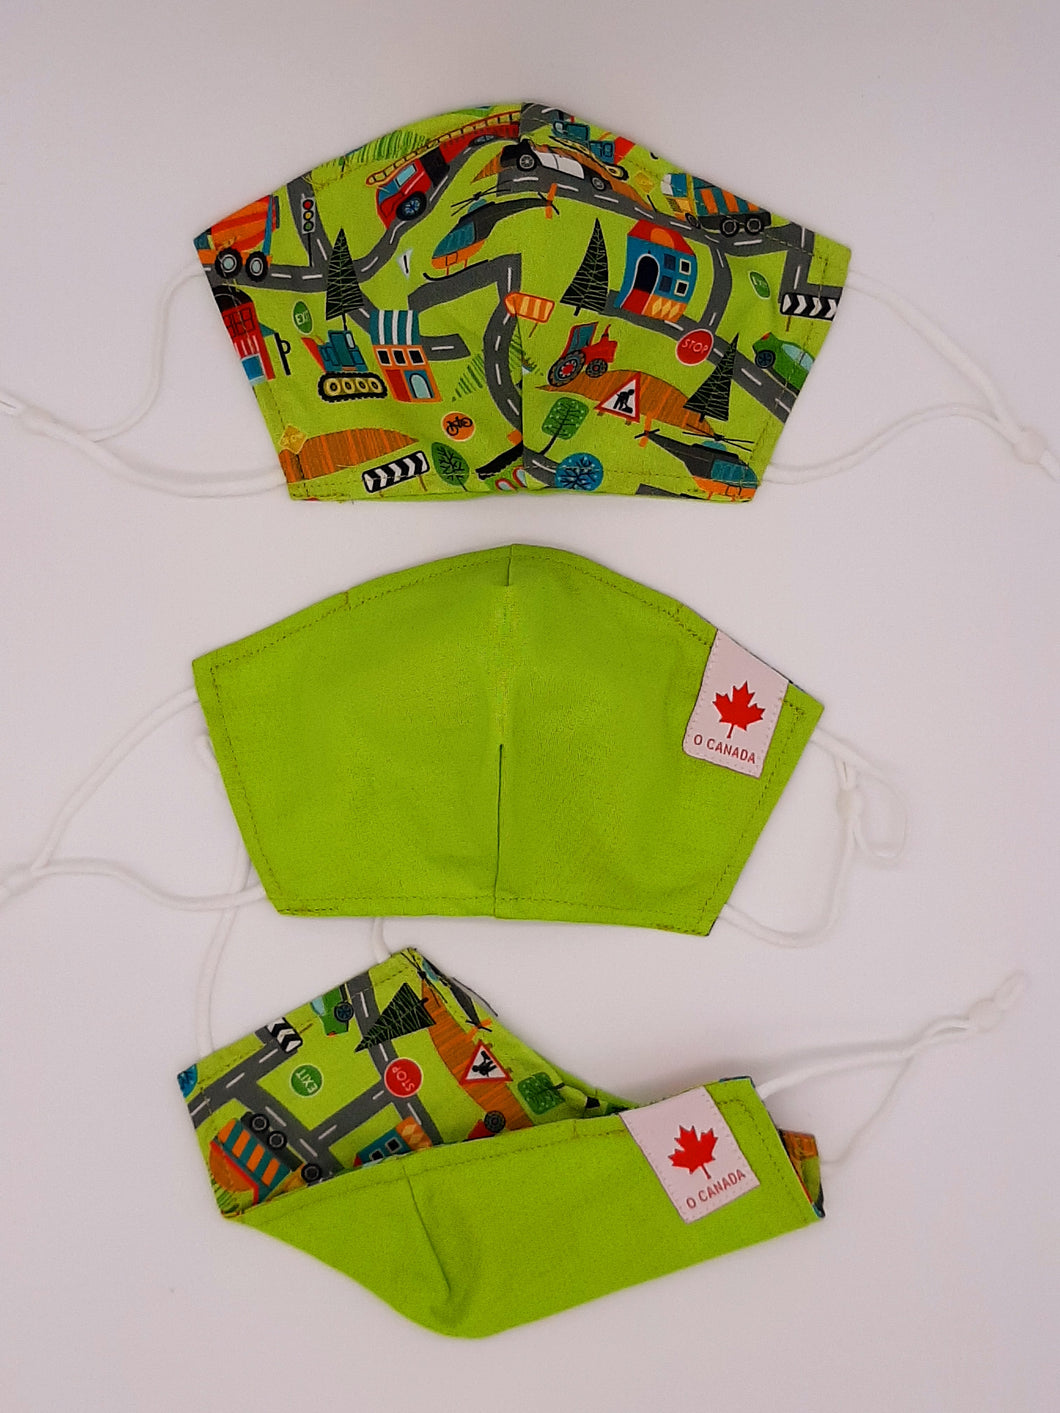 Back to School + Work Collection.   Print one side, solid color other side, reversible for versatility. Fashionable Face Covers that are functional, comfortable + Beautiful. If you have to wear a mask, wear one you LOVE!  Designed + Made in Canada.  Nose wire, adjustable ear loops, two layers of 100% cotton for comfort with integrate filter pocket between the two layer cotton layers.